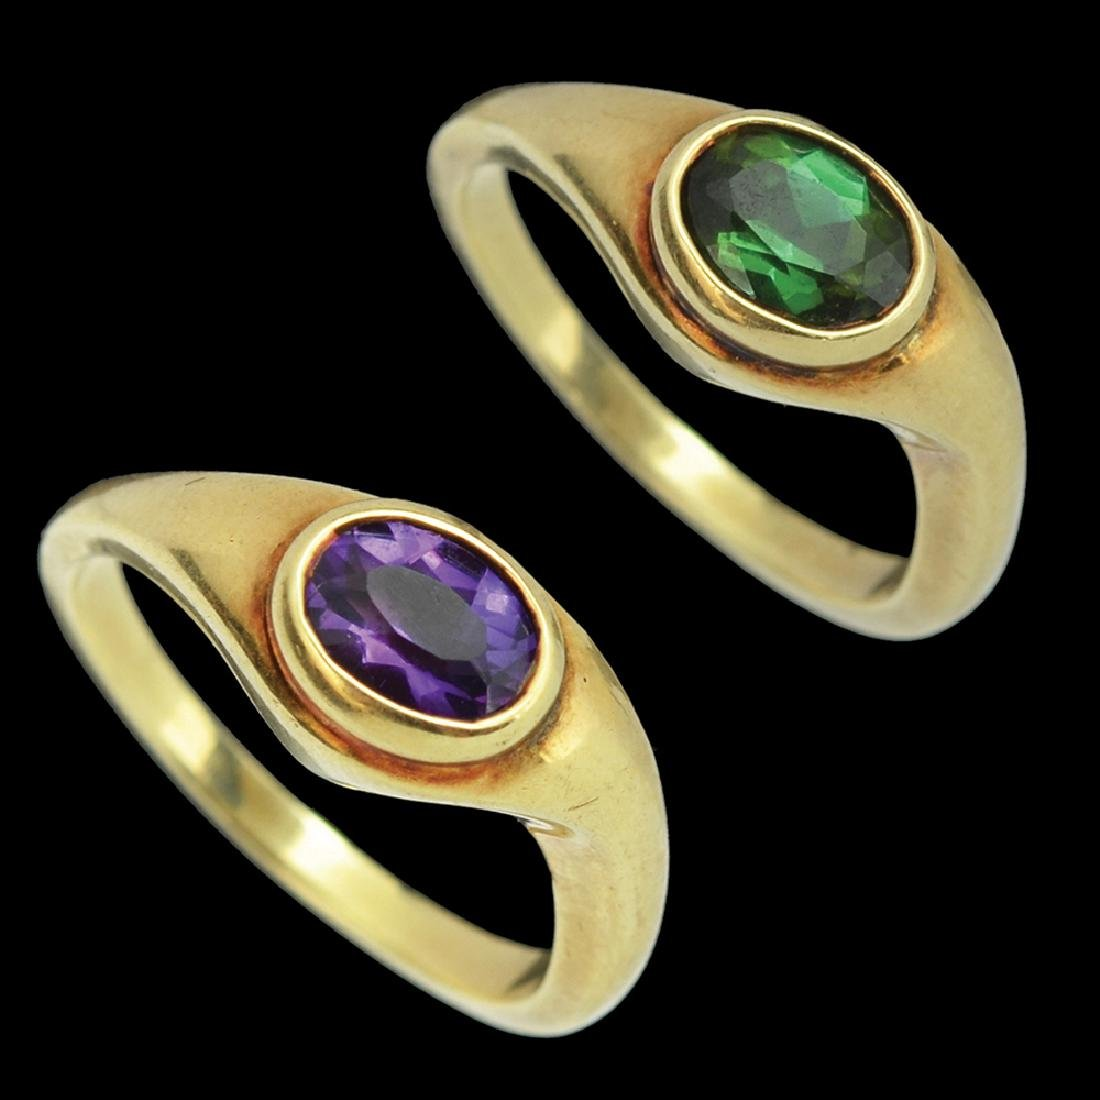 A SET OF TWO 14K GOLD RINGS